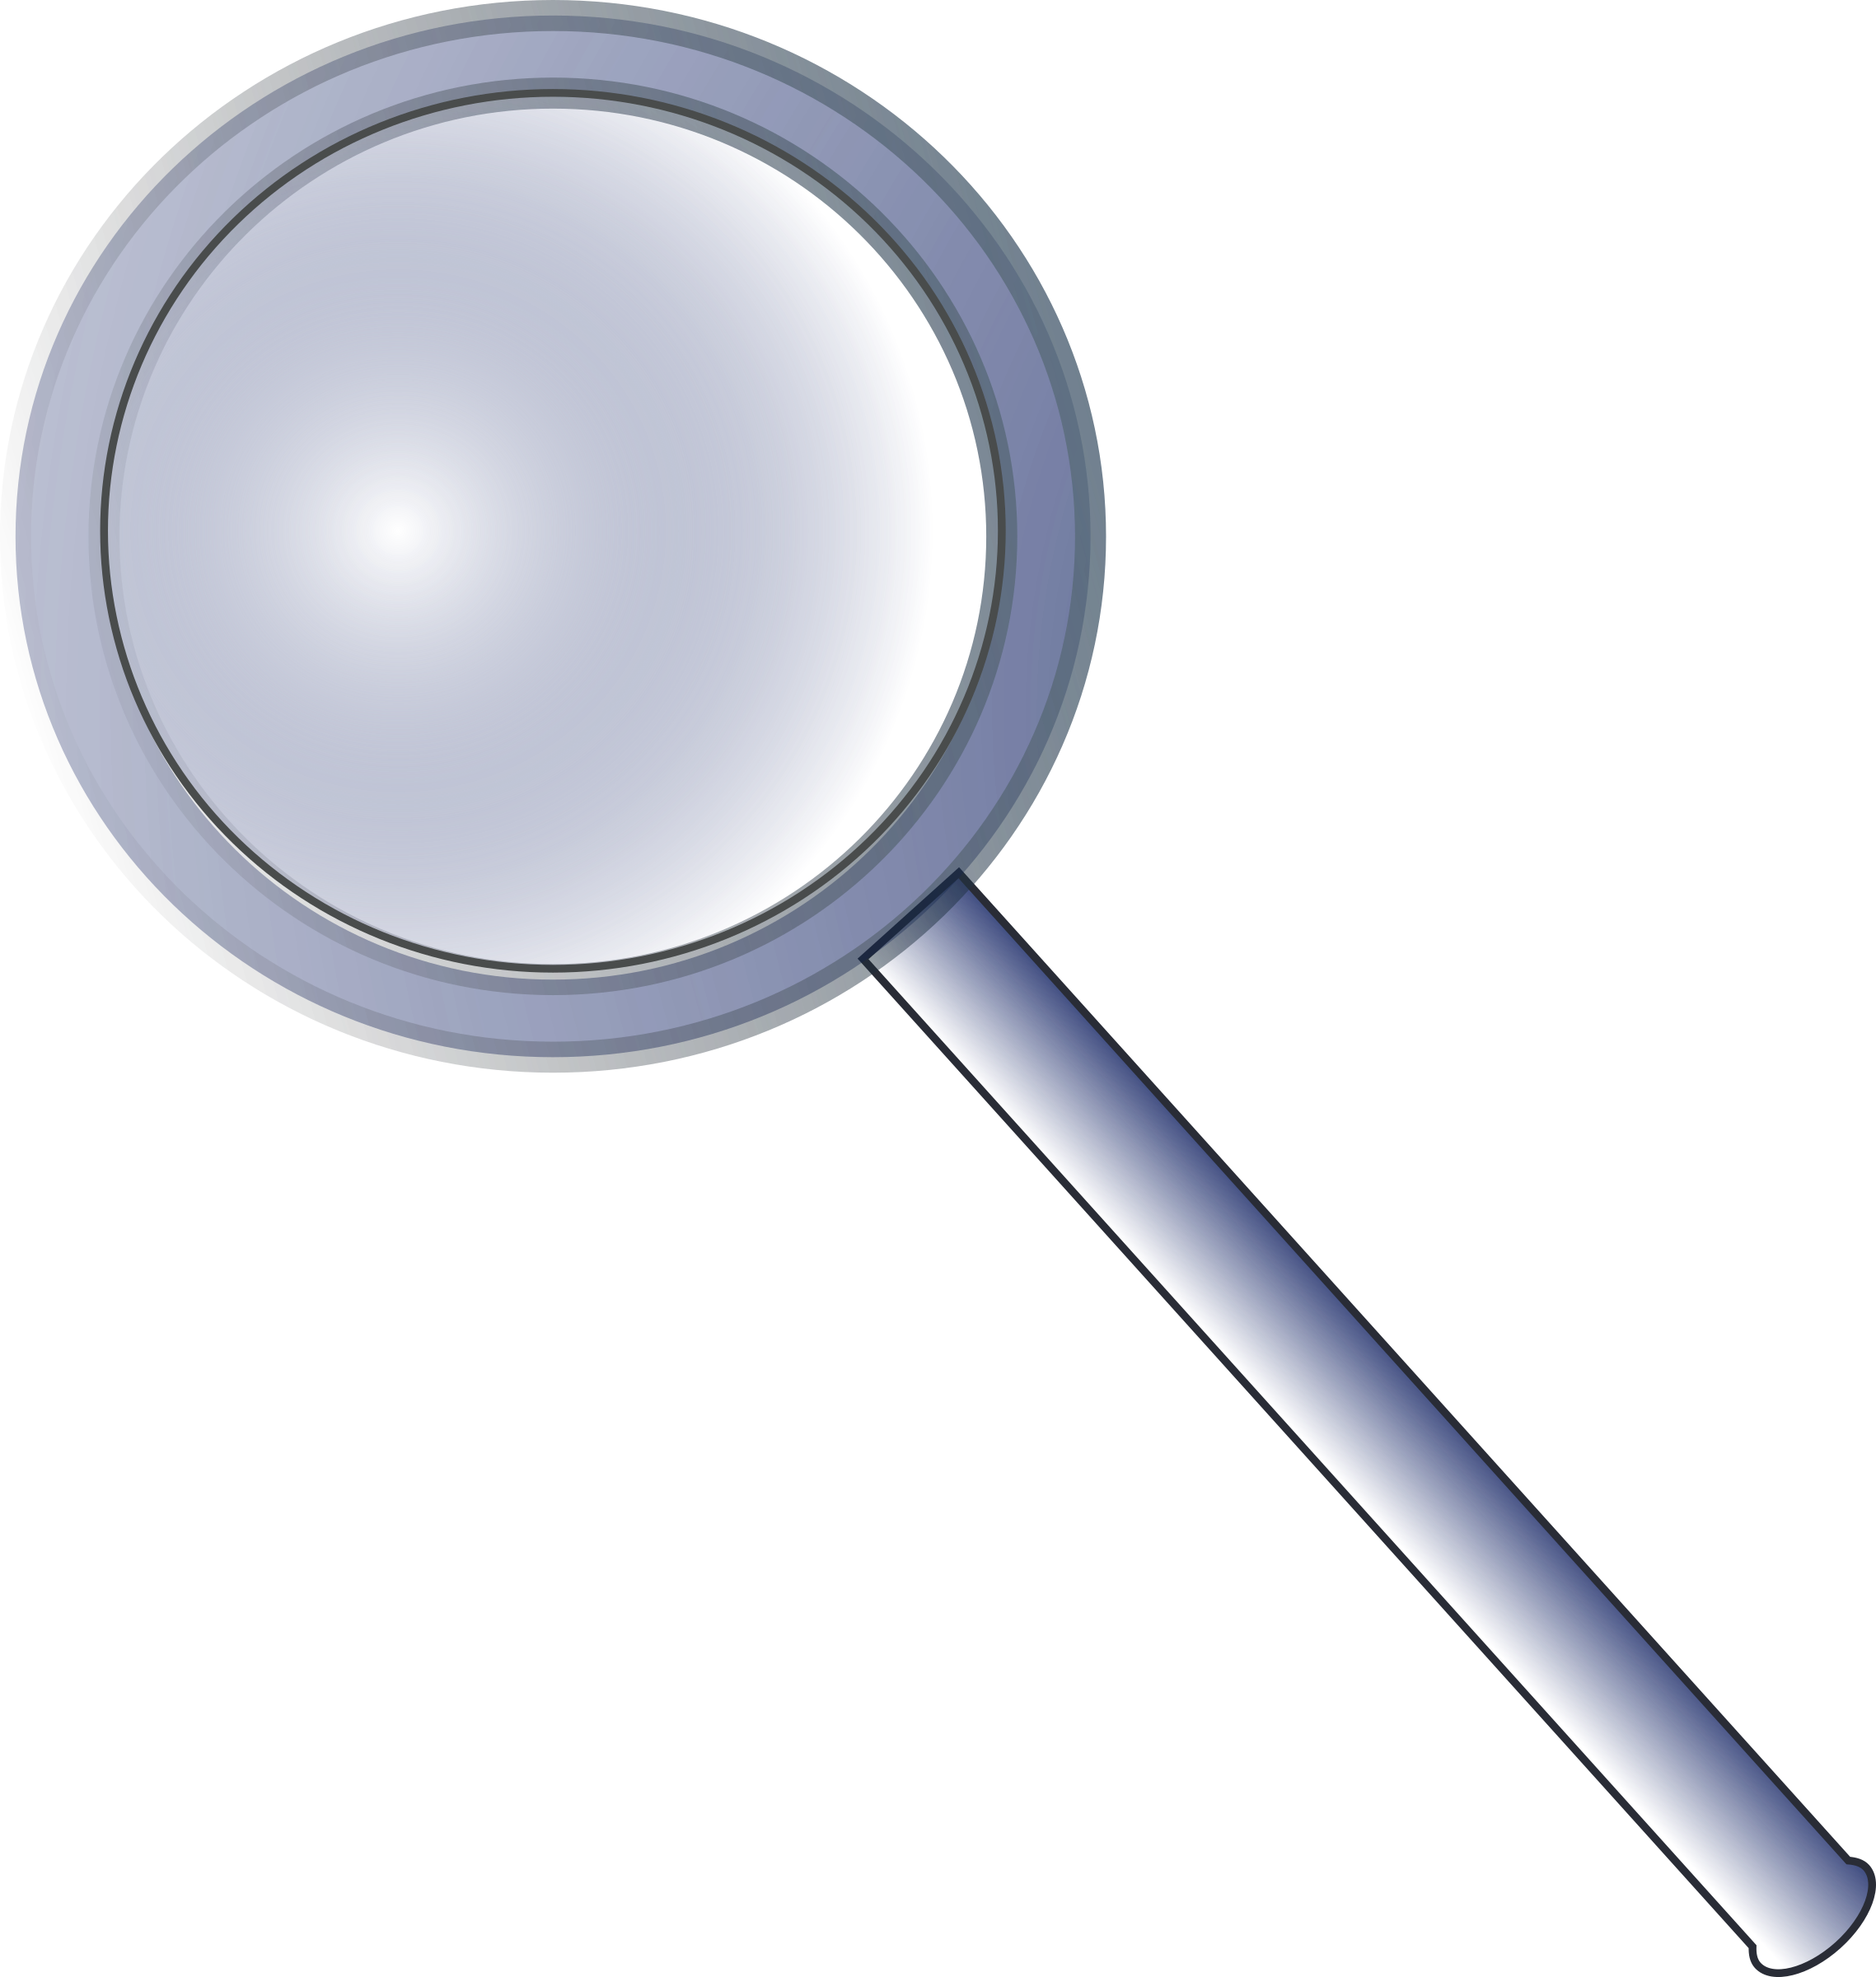 magnifying glass olivier 01 by Anonymous